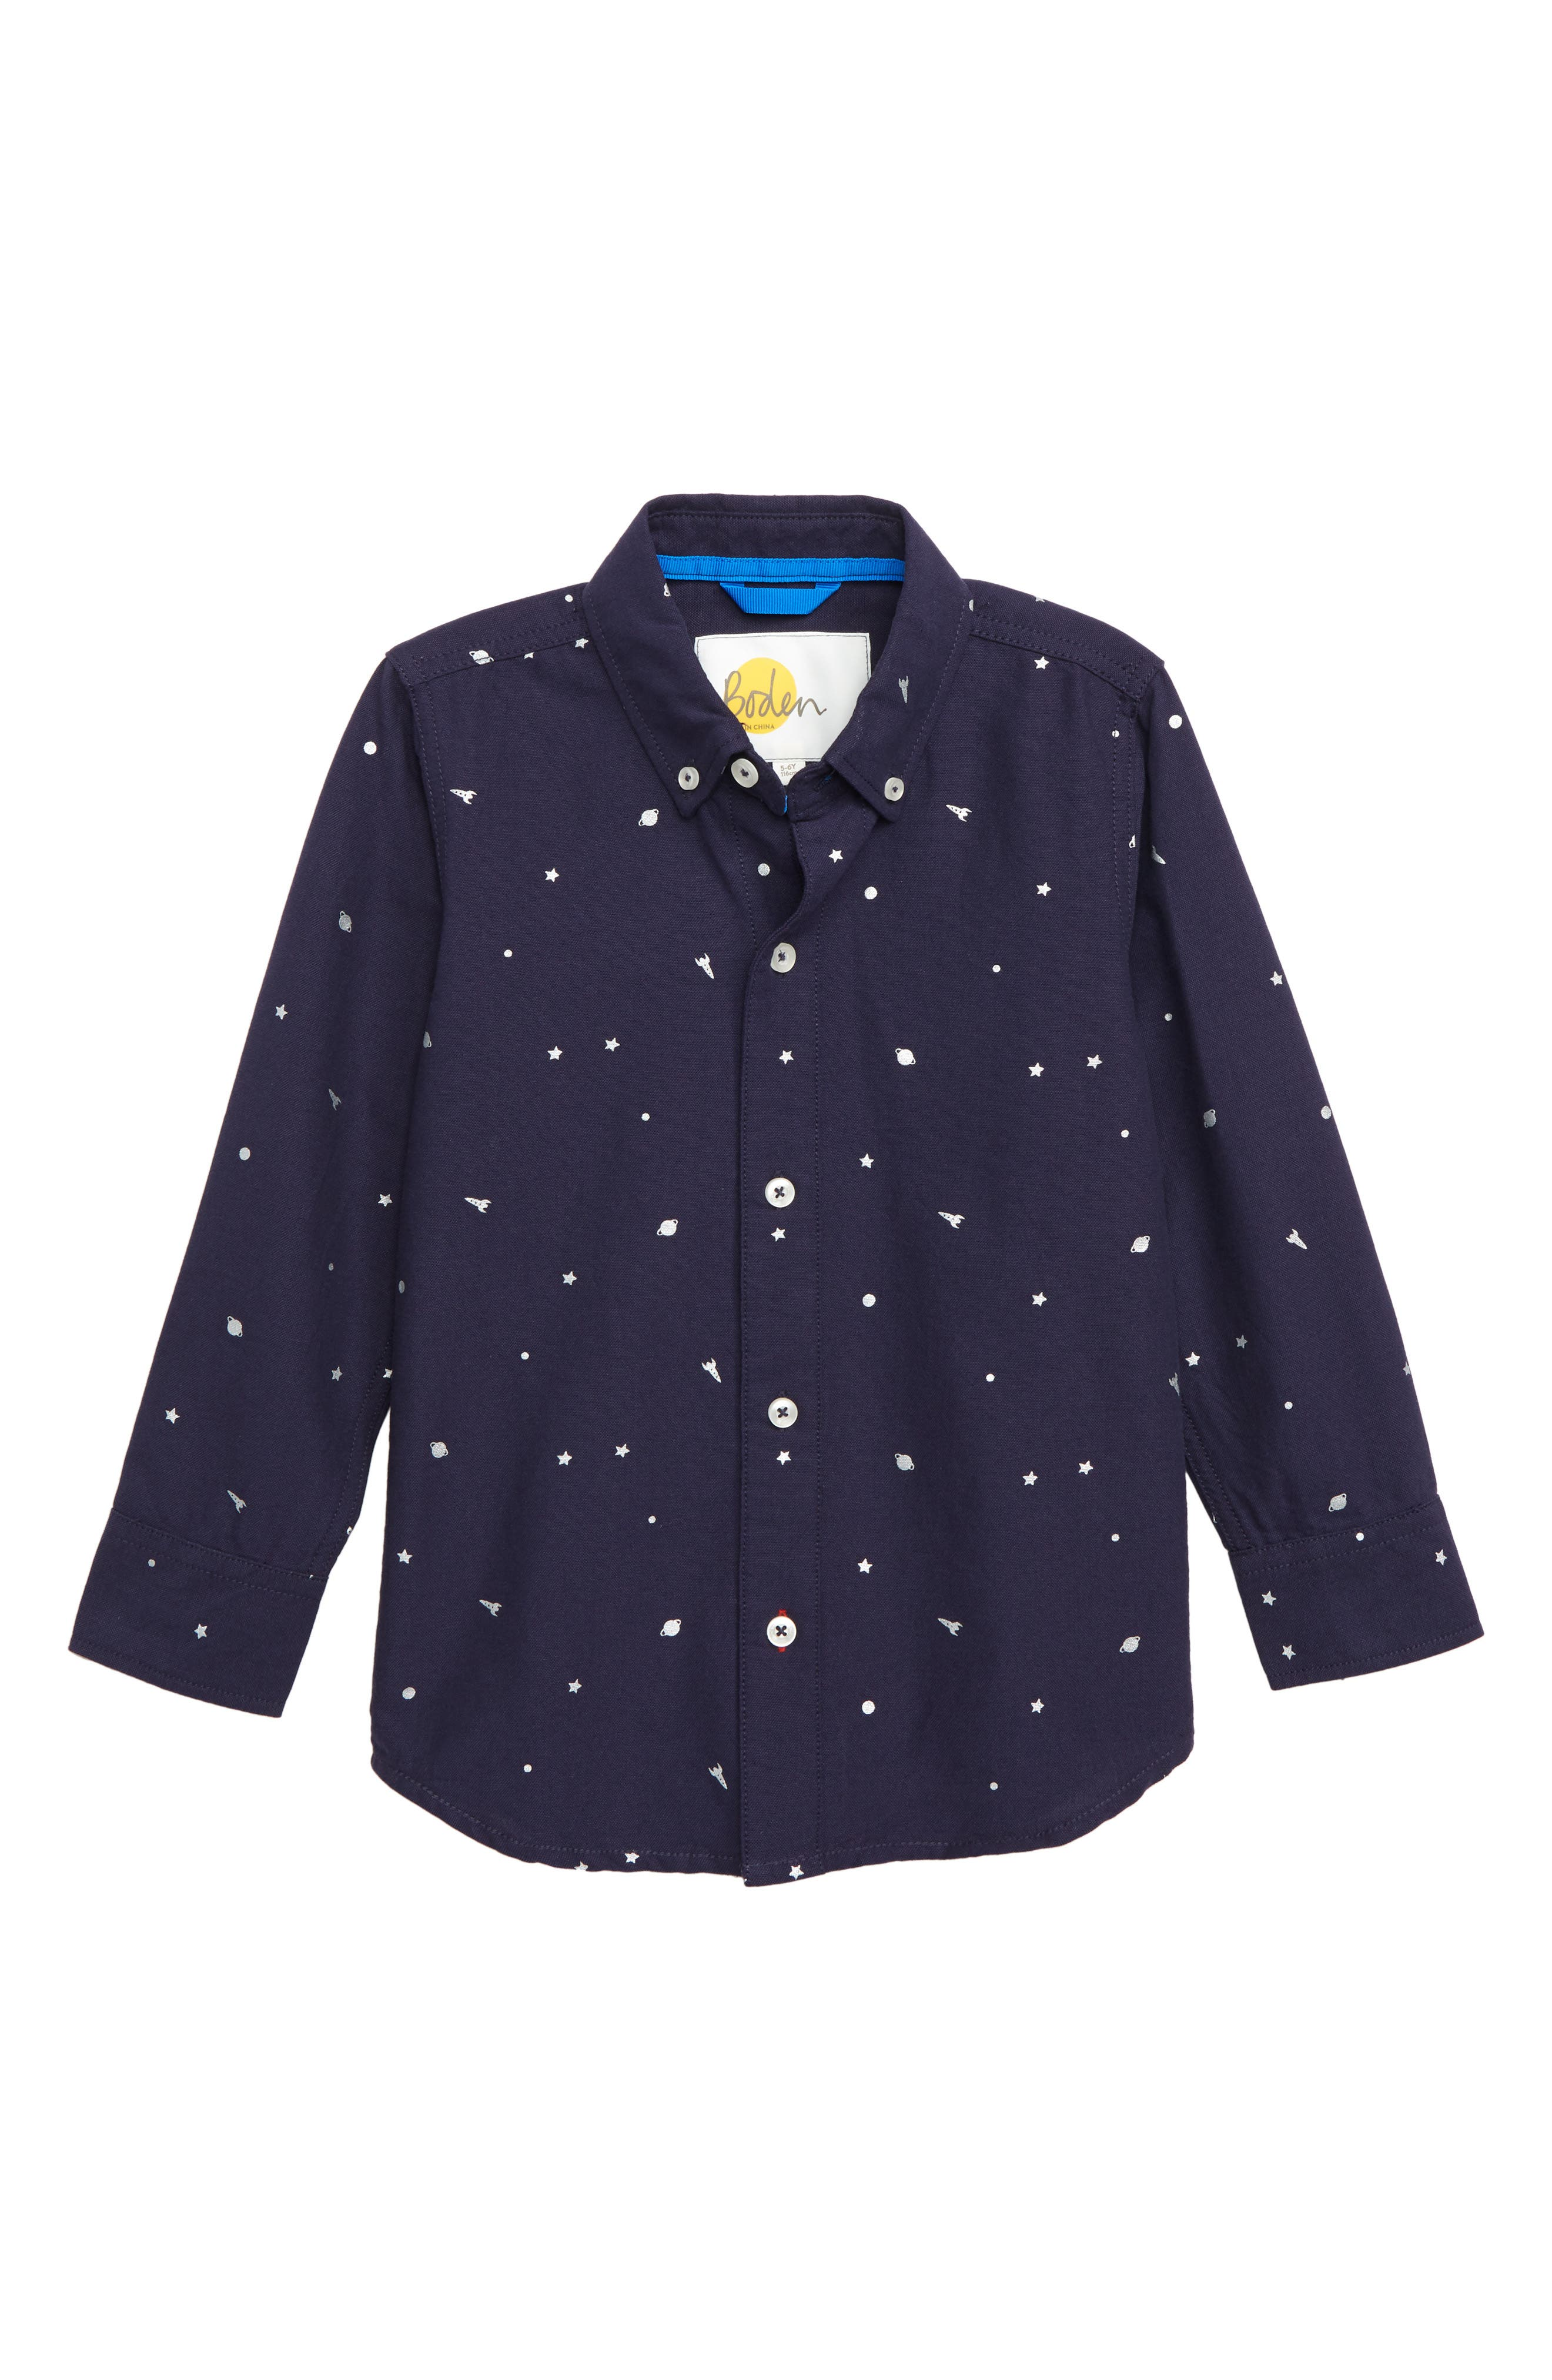 Space Party Shirt,                             Main thumbnail 1, color,                             NAVY MARL OUTER SPACE